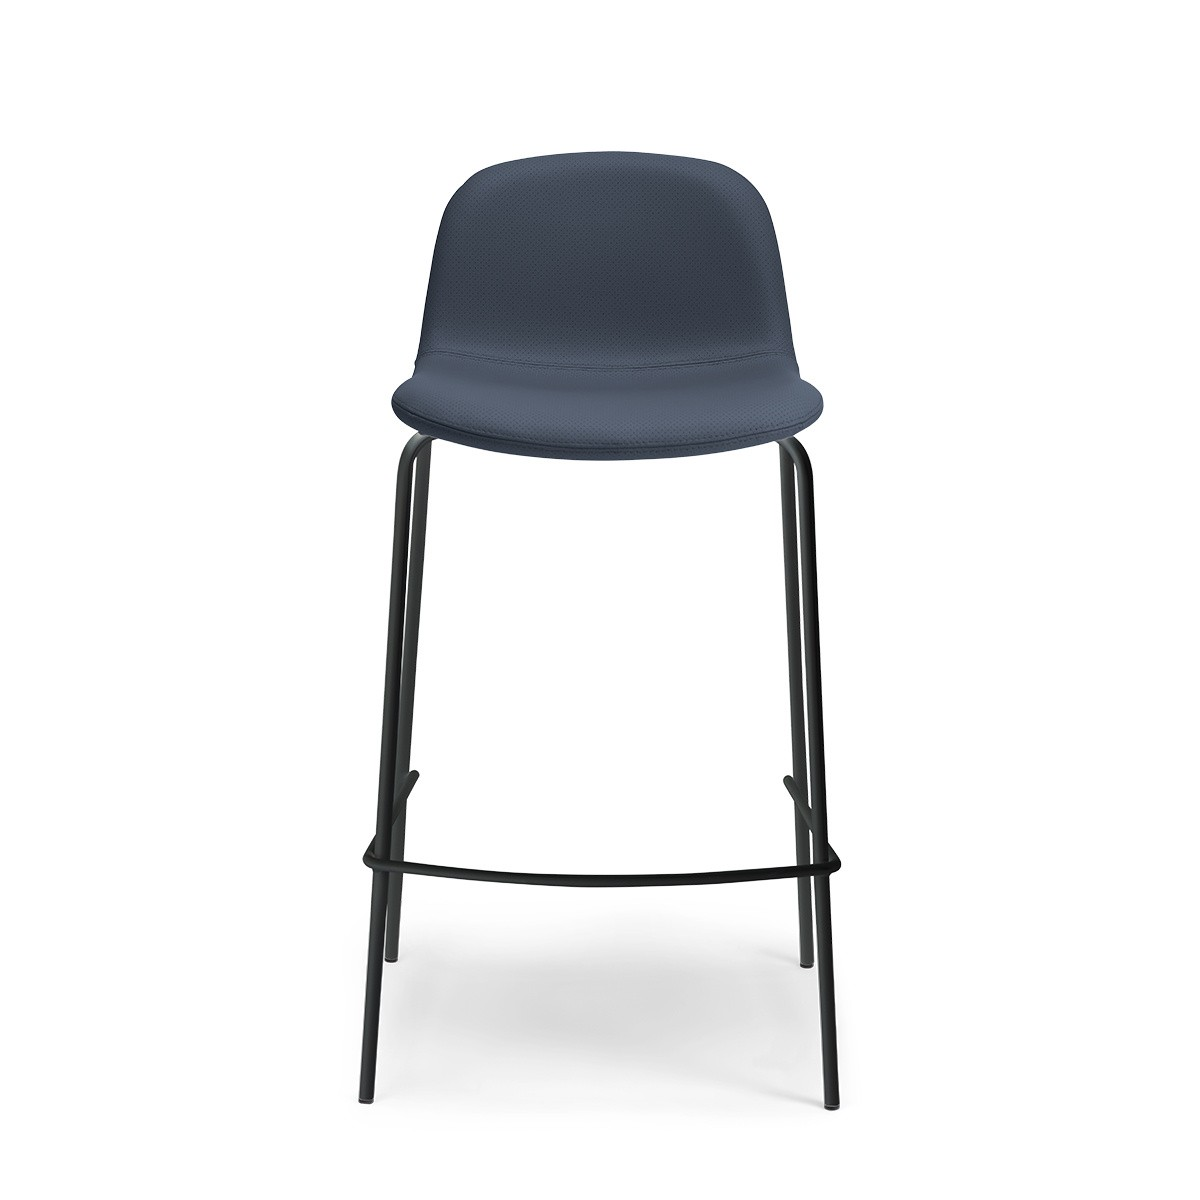 Monza barstool in blue perforated leather with a black frame